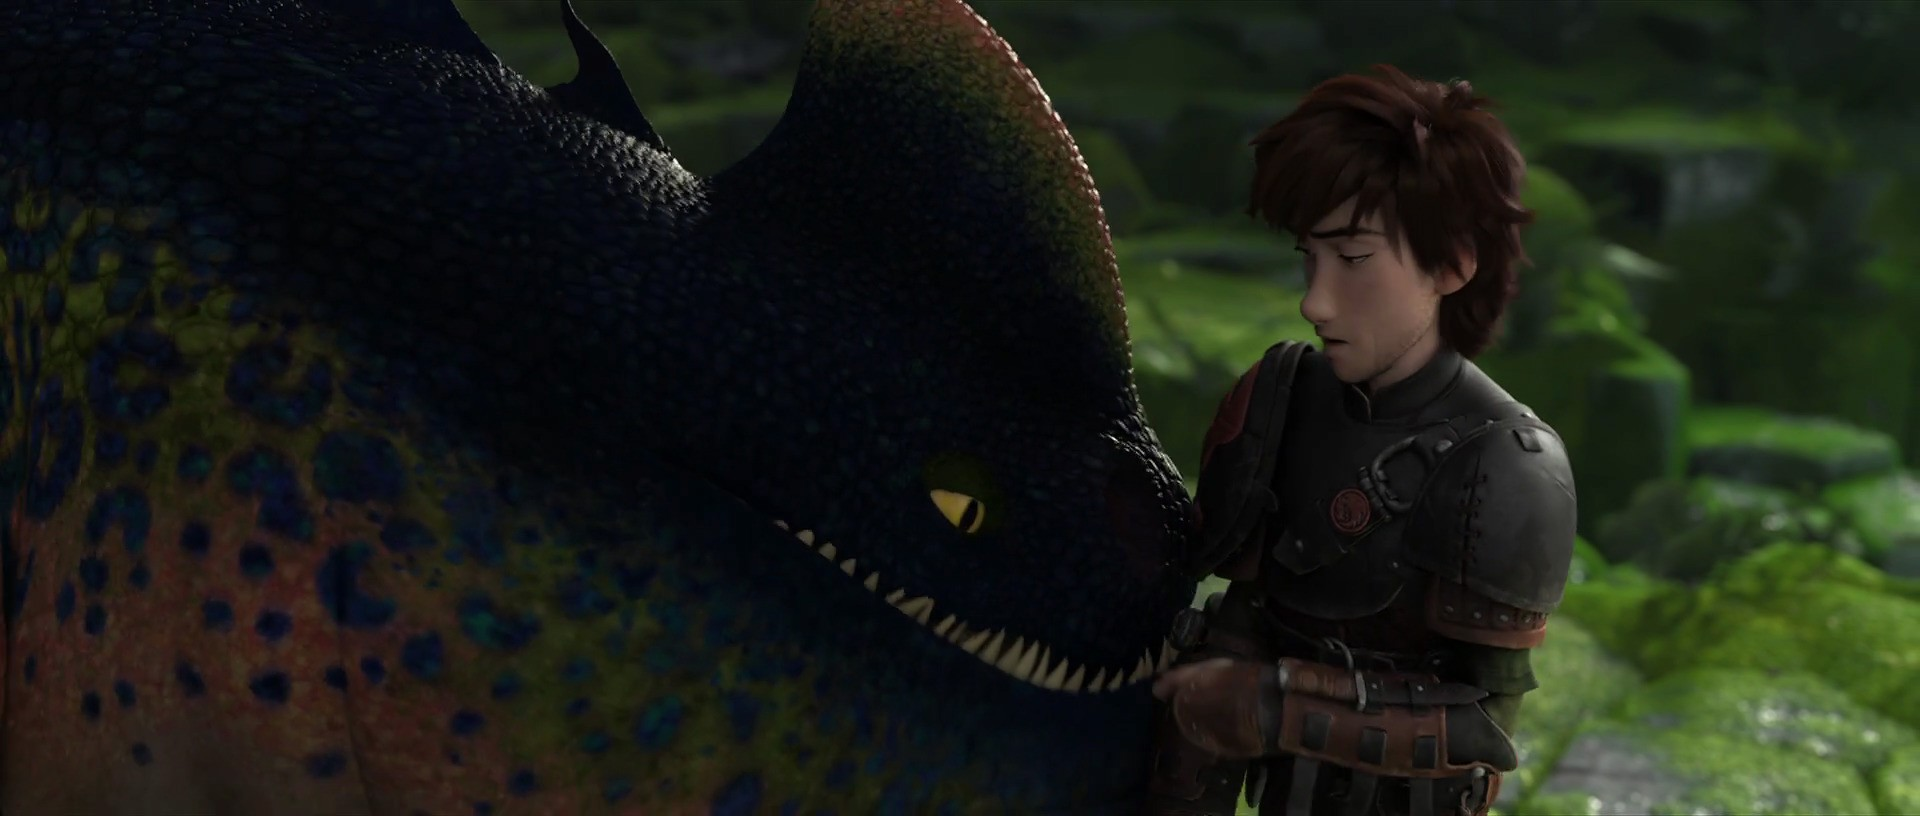 How To Train Your Dragon 2 Spinoff: Cast Chat Dream Projects Underground